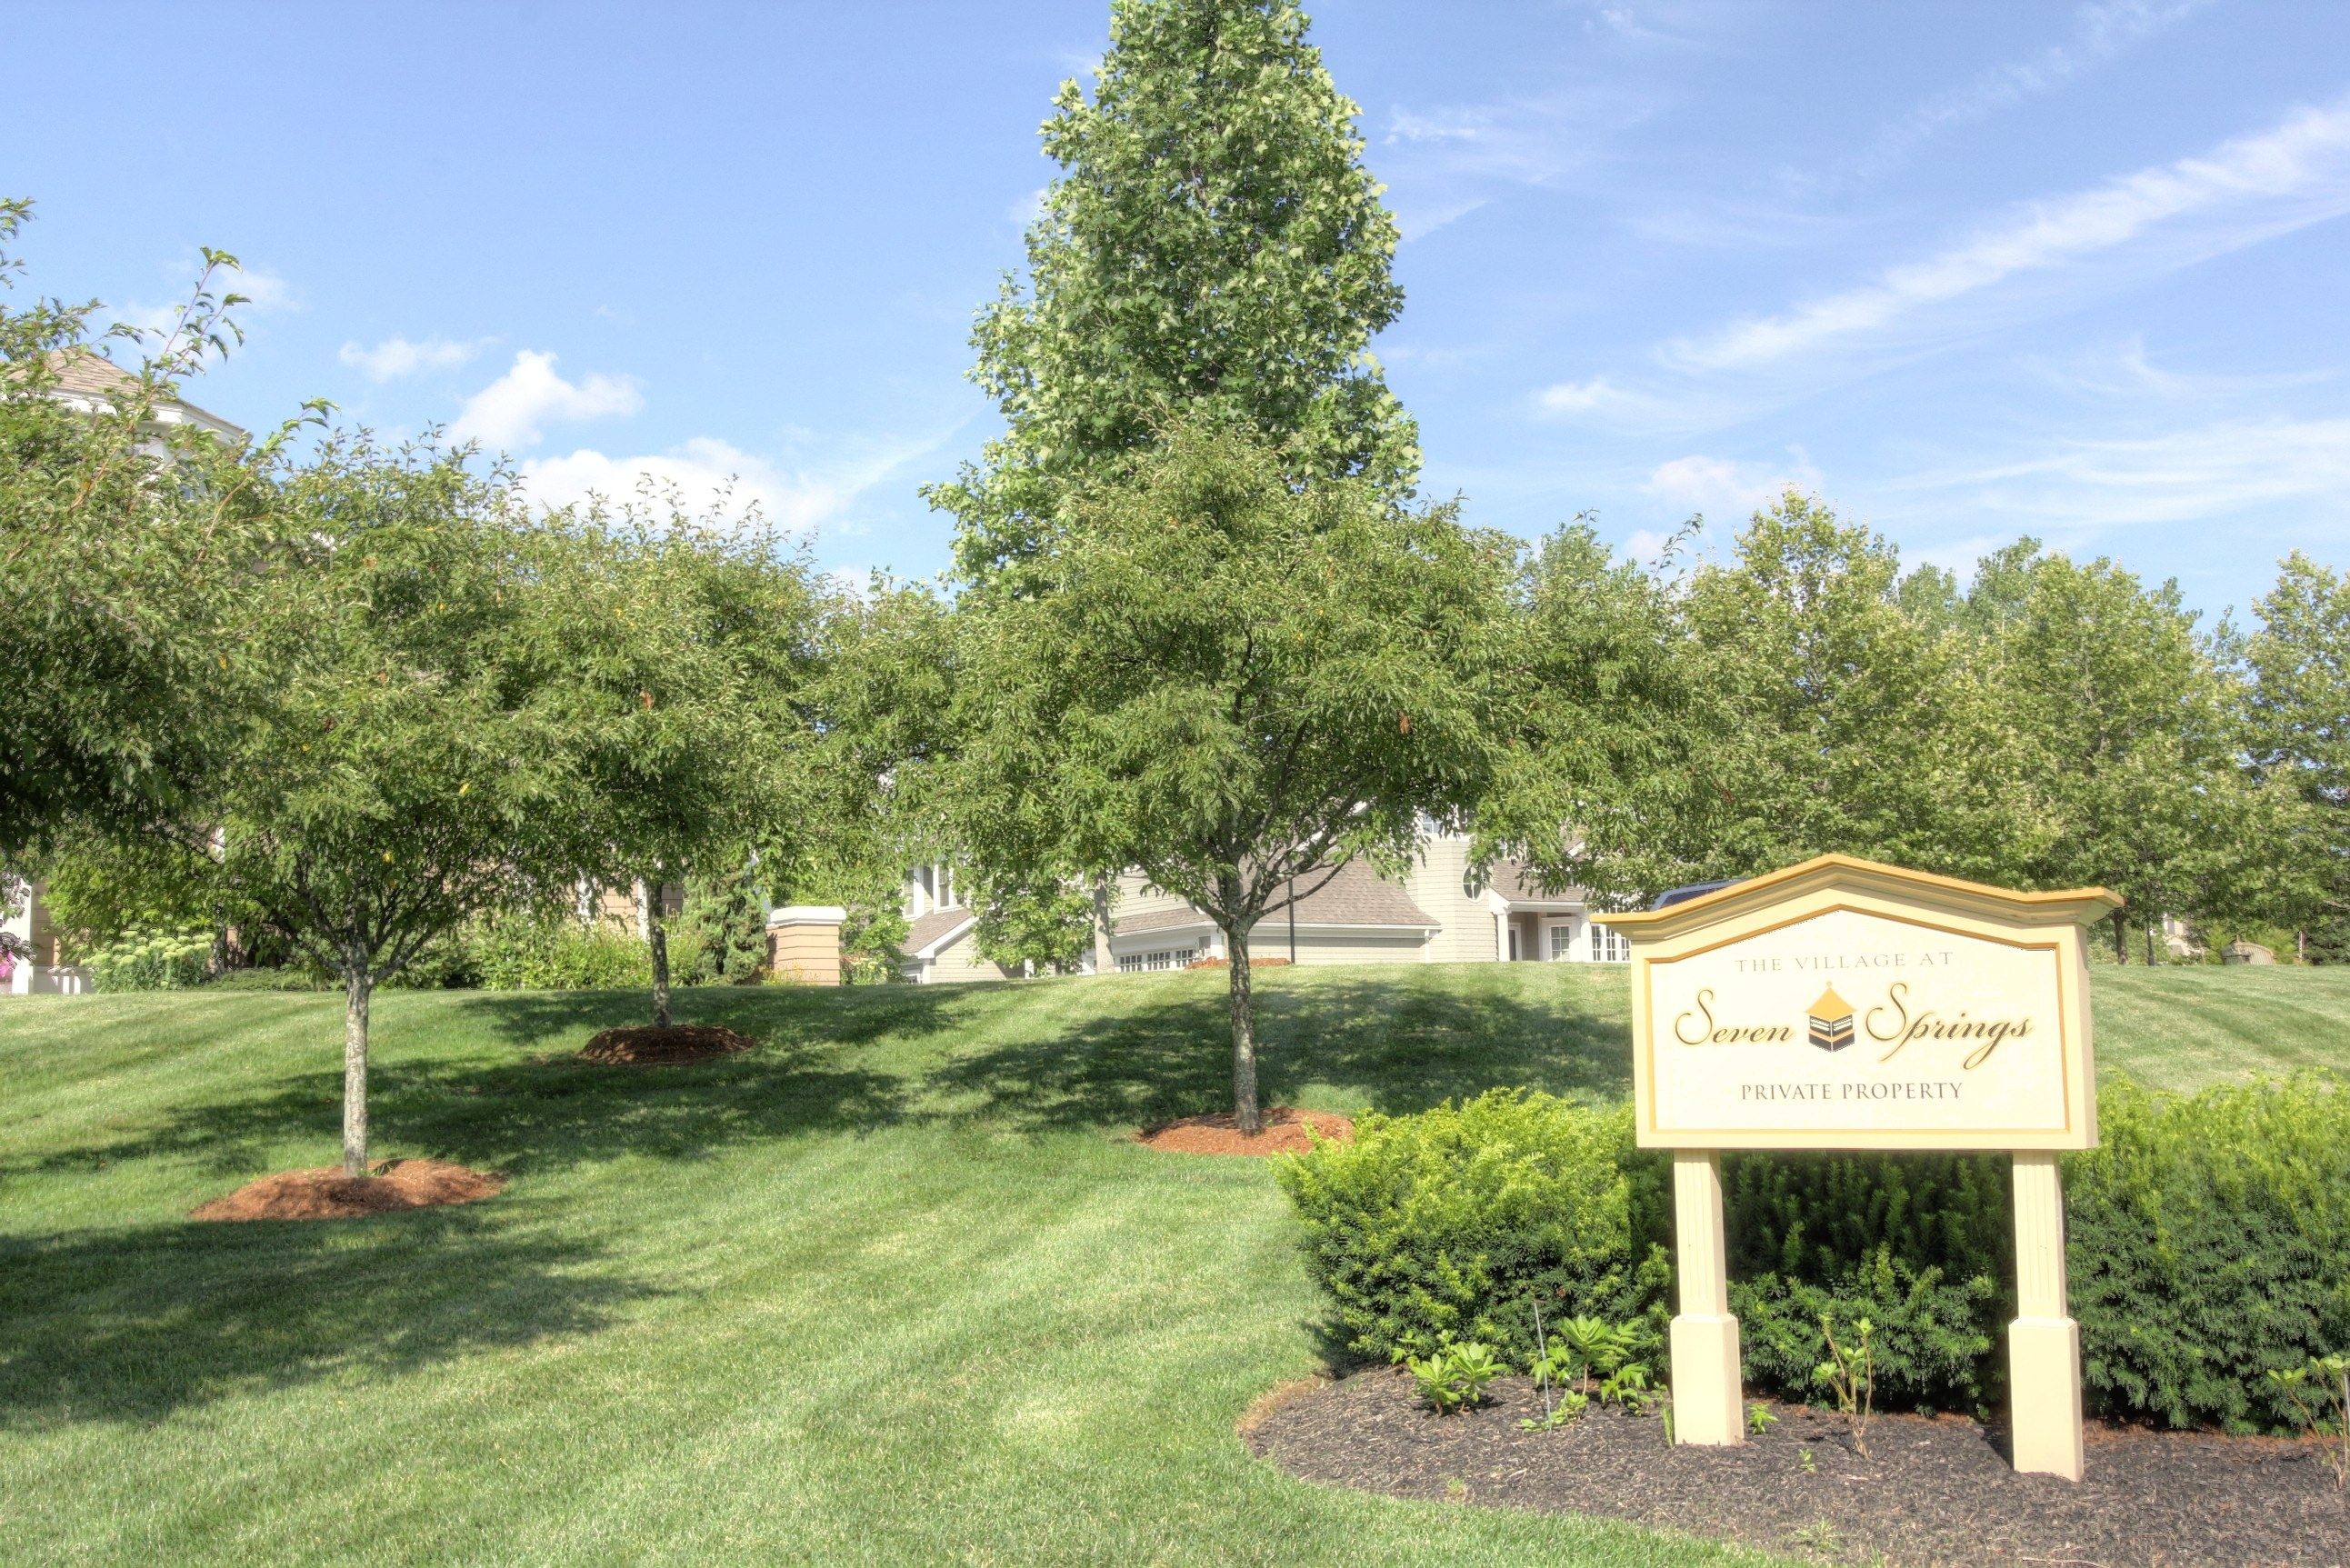 Village at Seven Springs Condos - Current Listings & Pictures